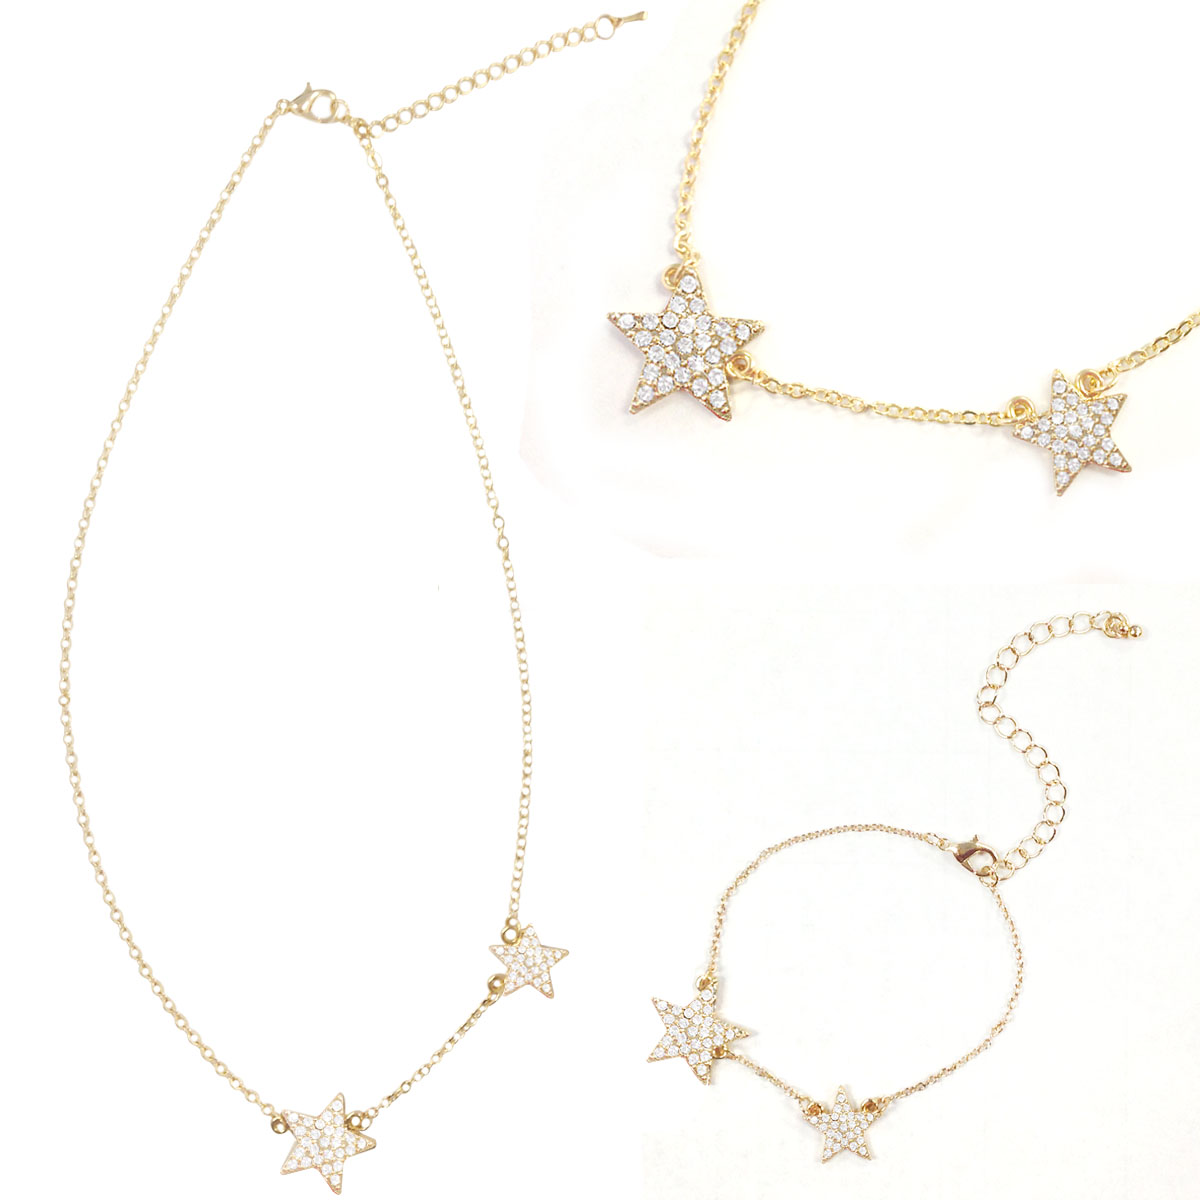 Wrapables® Gold Plated Petite Double Crystal Star Pendant Necklace and Bracelet Jeweley Set